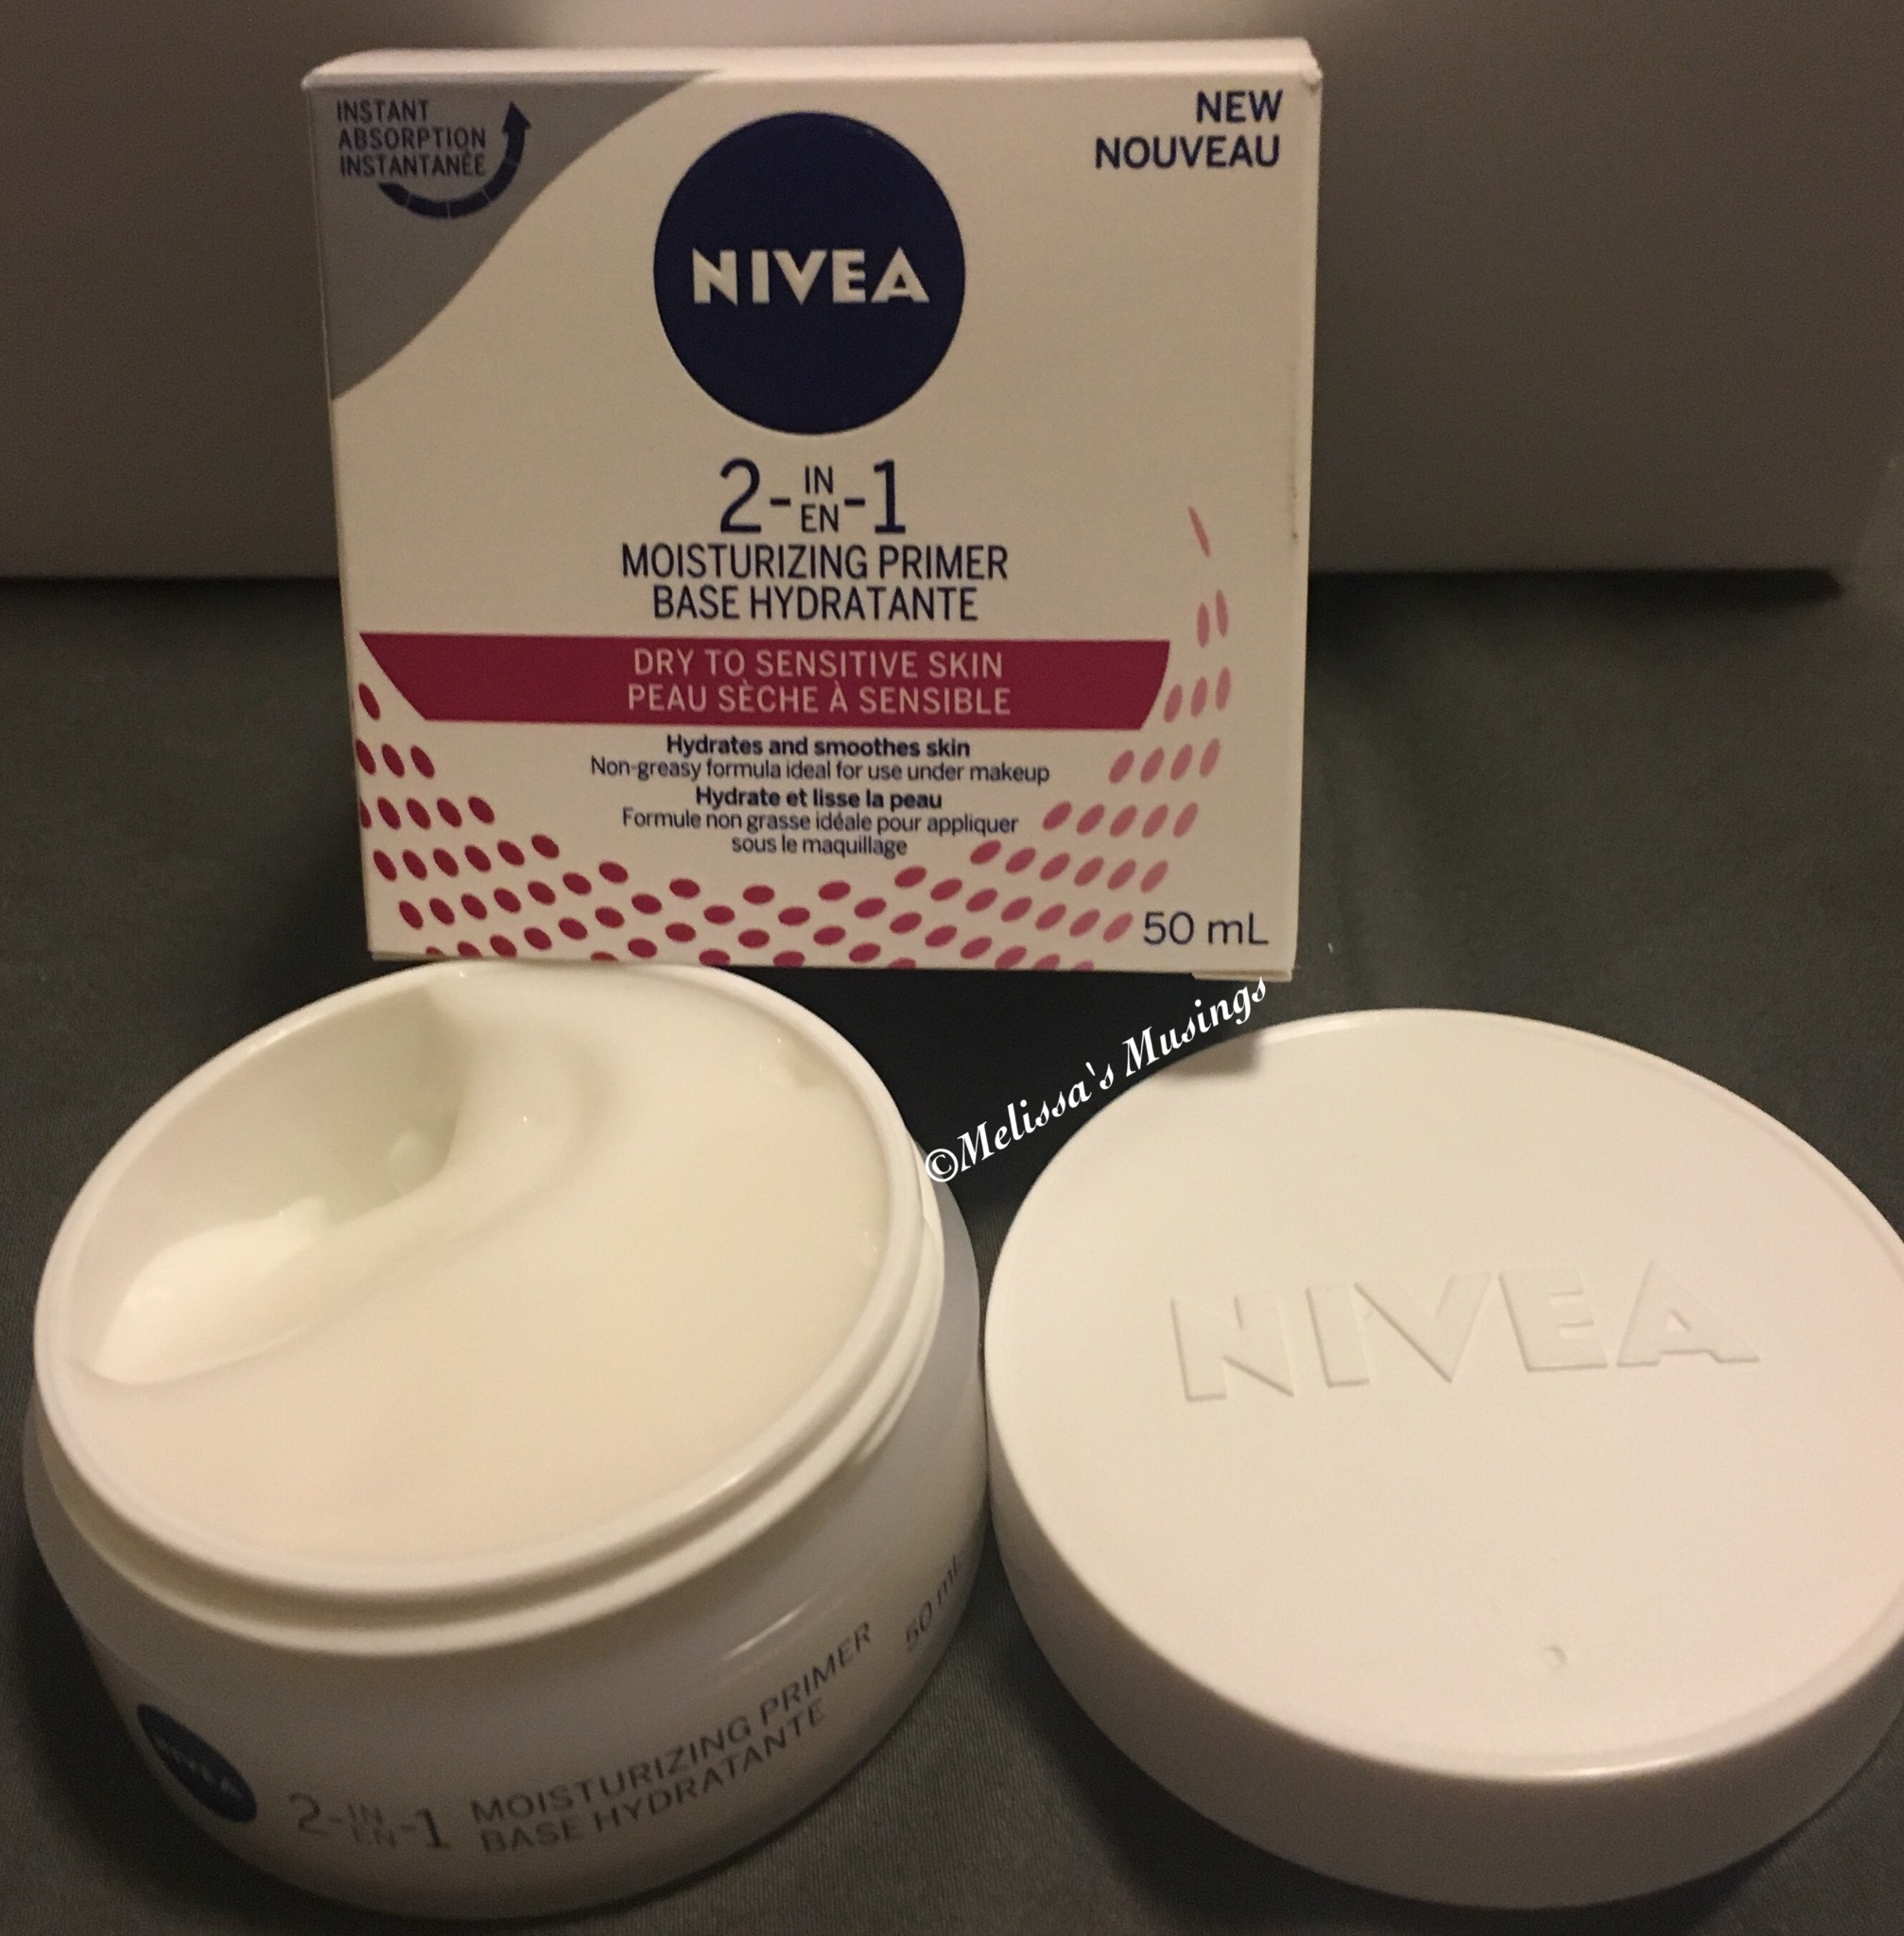 Nivea 2 In 1 Moisturizing Primer Dry To Sensitive Skin